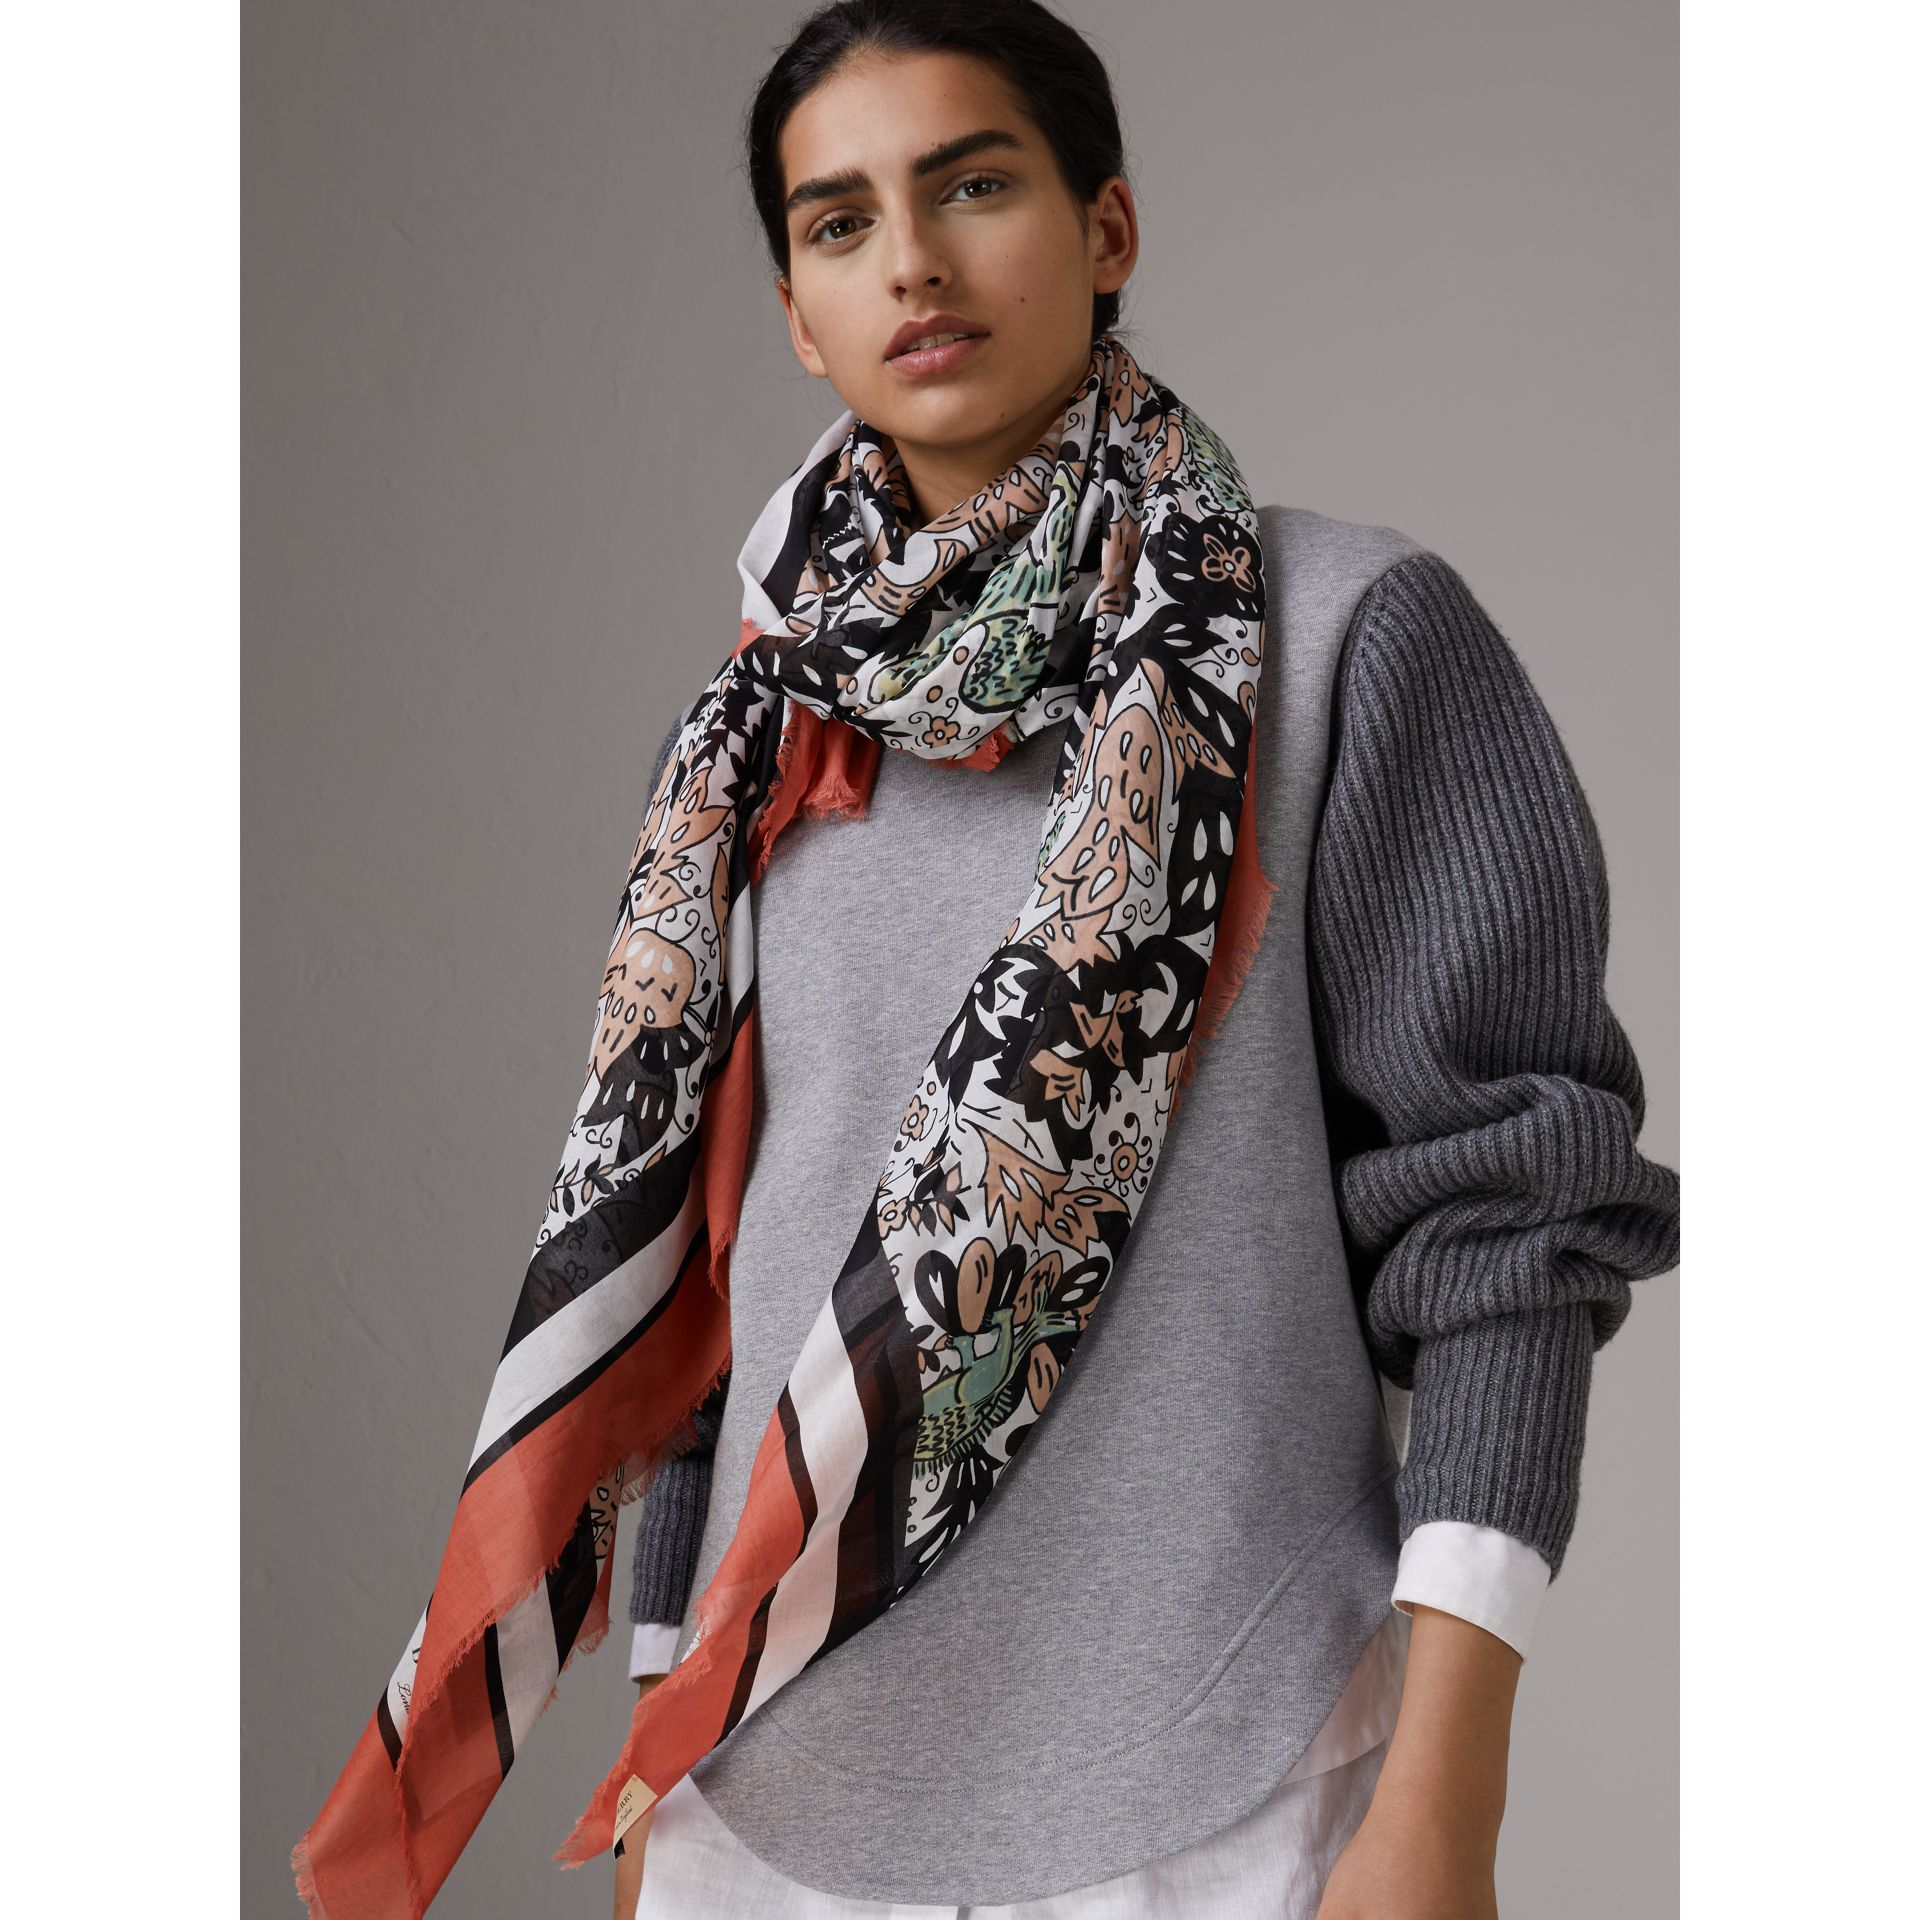 Beasts Print Lightweight Cotton Scarf in Antique Taupe Pink - Women | Burberry - gallery image 3